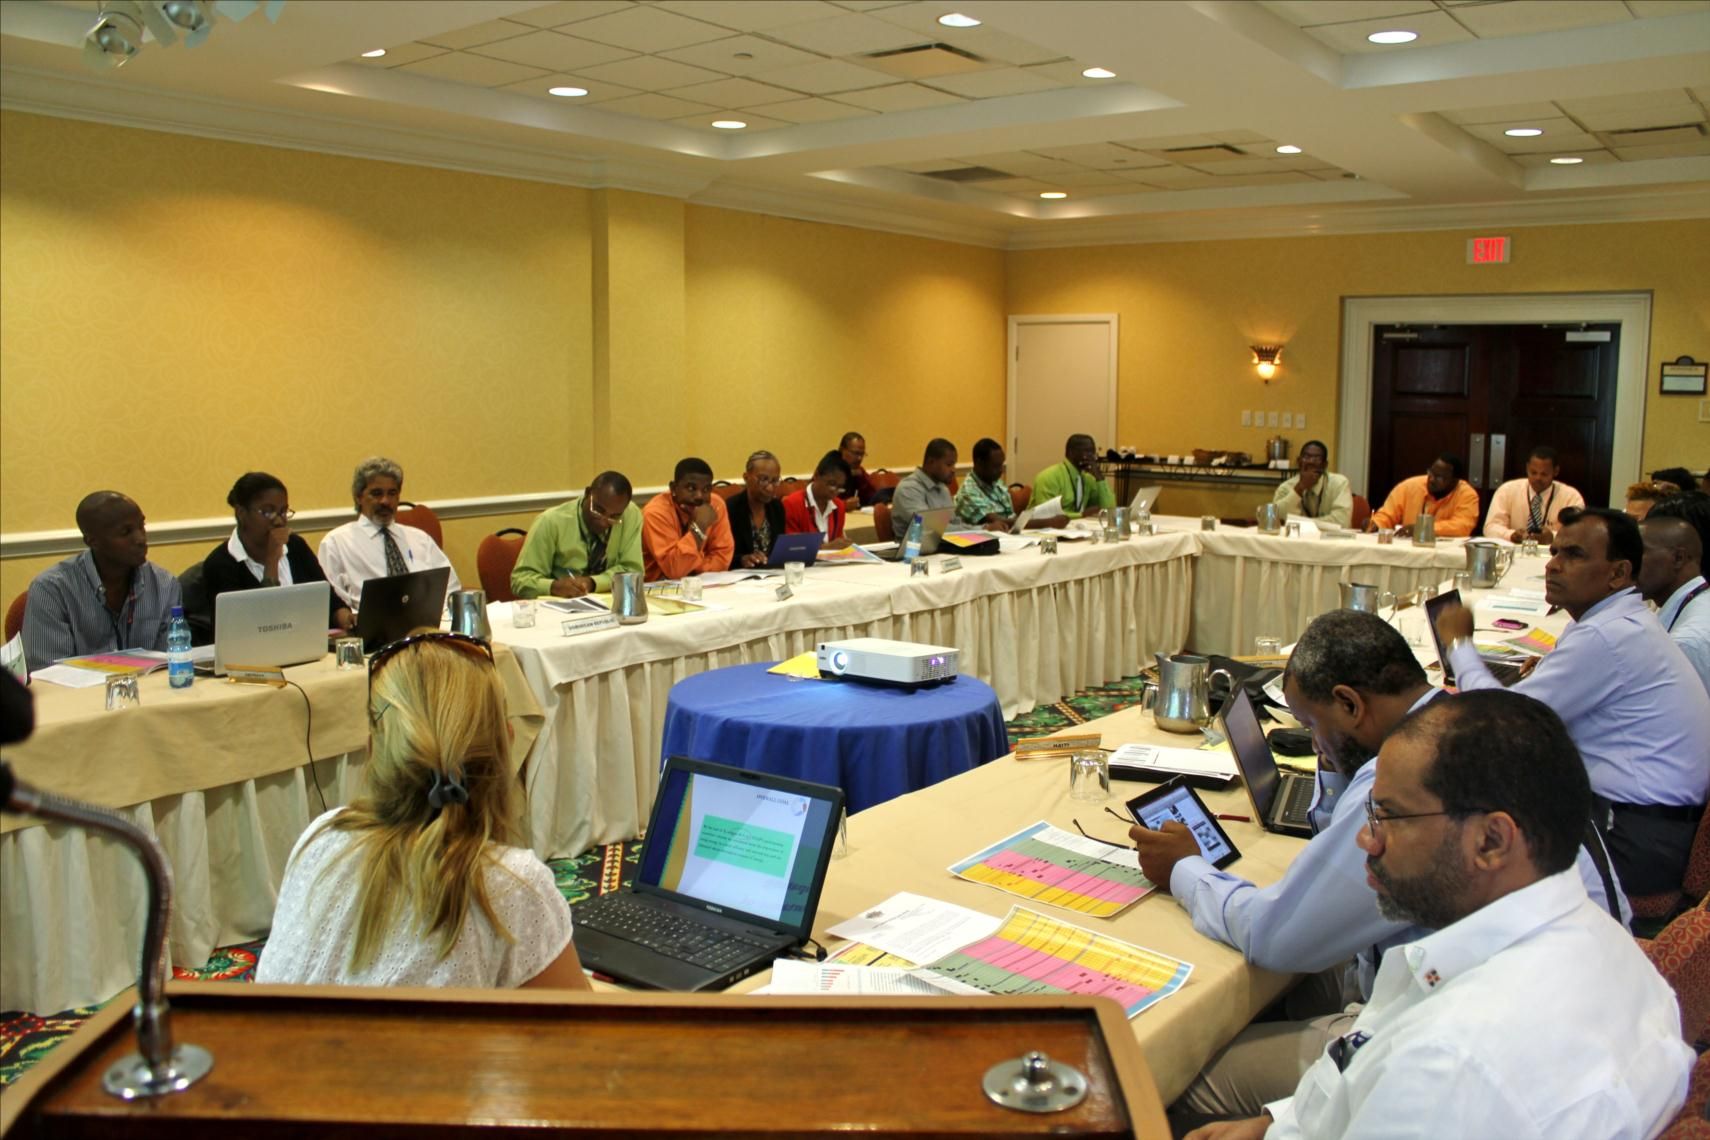 REGIONAL SUSTAINABLE ENERGY WORKSHOP FOR ENERGY AND EDUCATOR STAKEHOLDERS IN THE CARIBBEAN